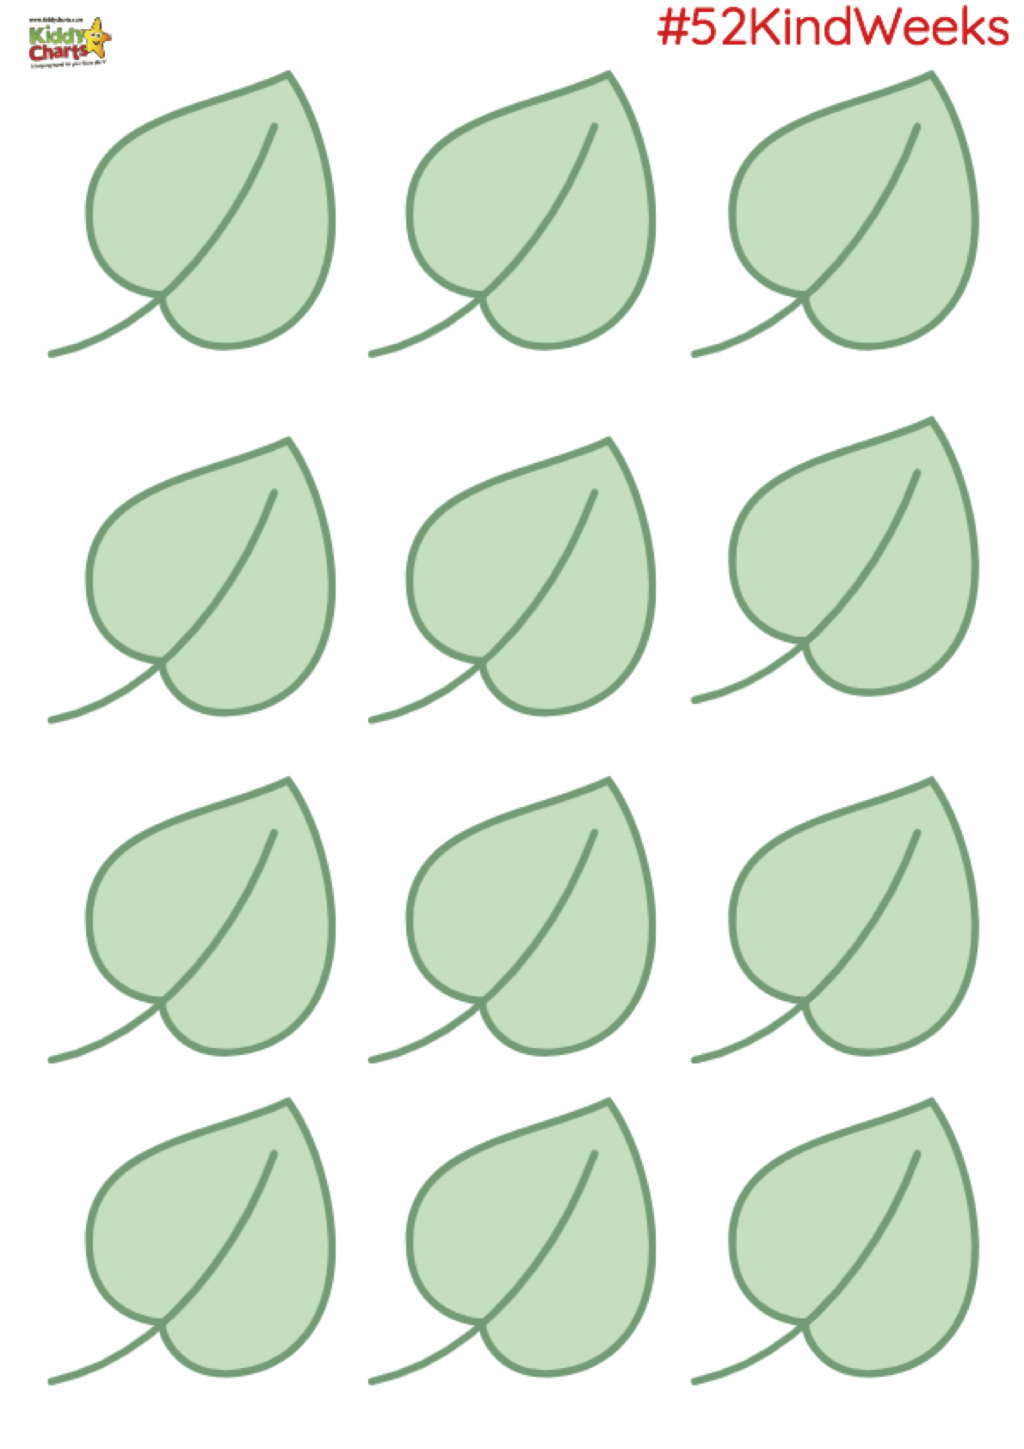 Here are the leaves for our Kindness Tree - we hope you enjoy making it. #52KindWeeks #Kindness #BeKind #homeschool